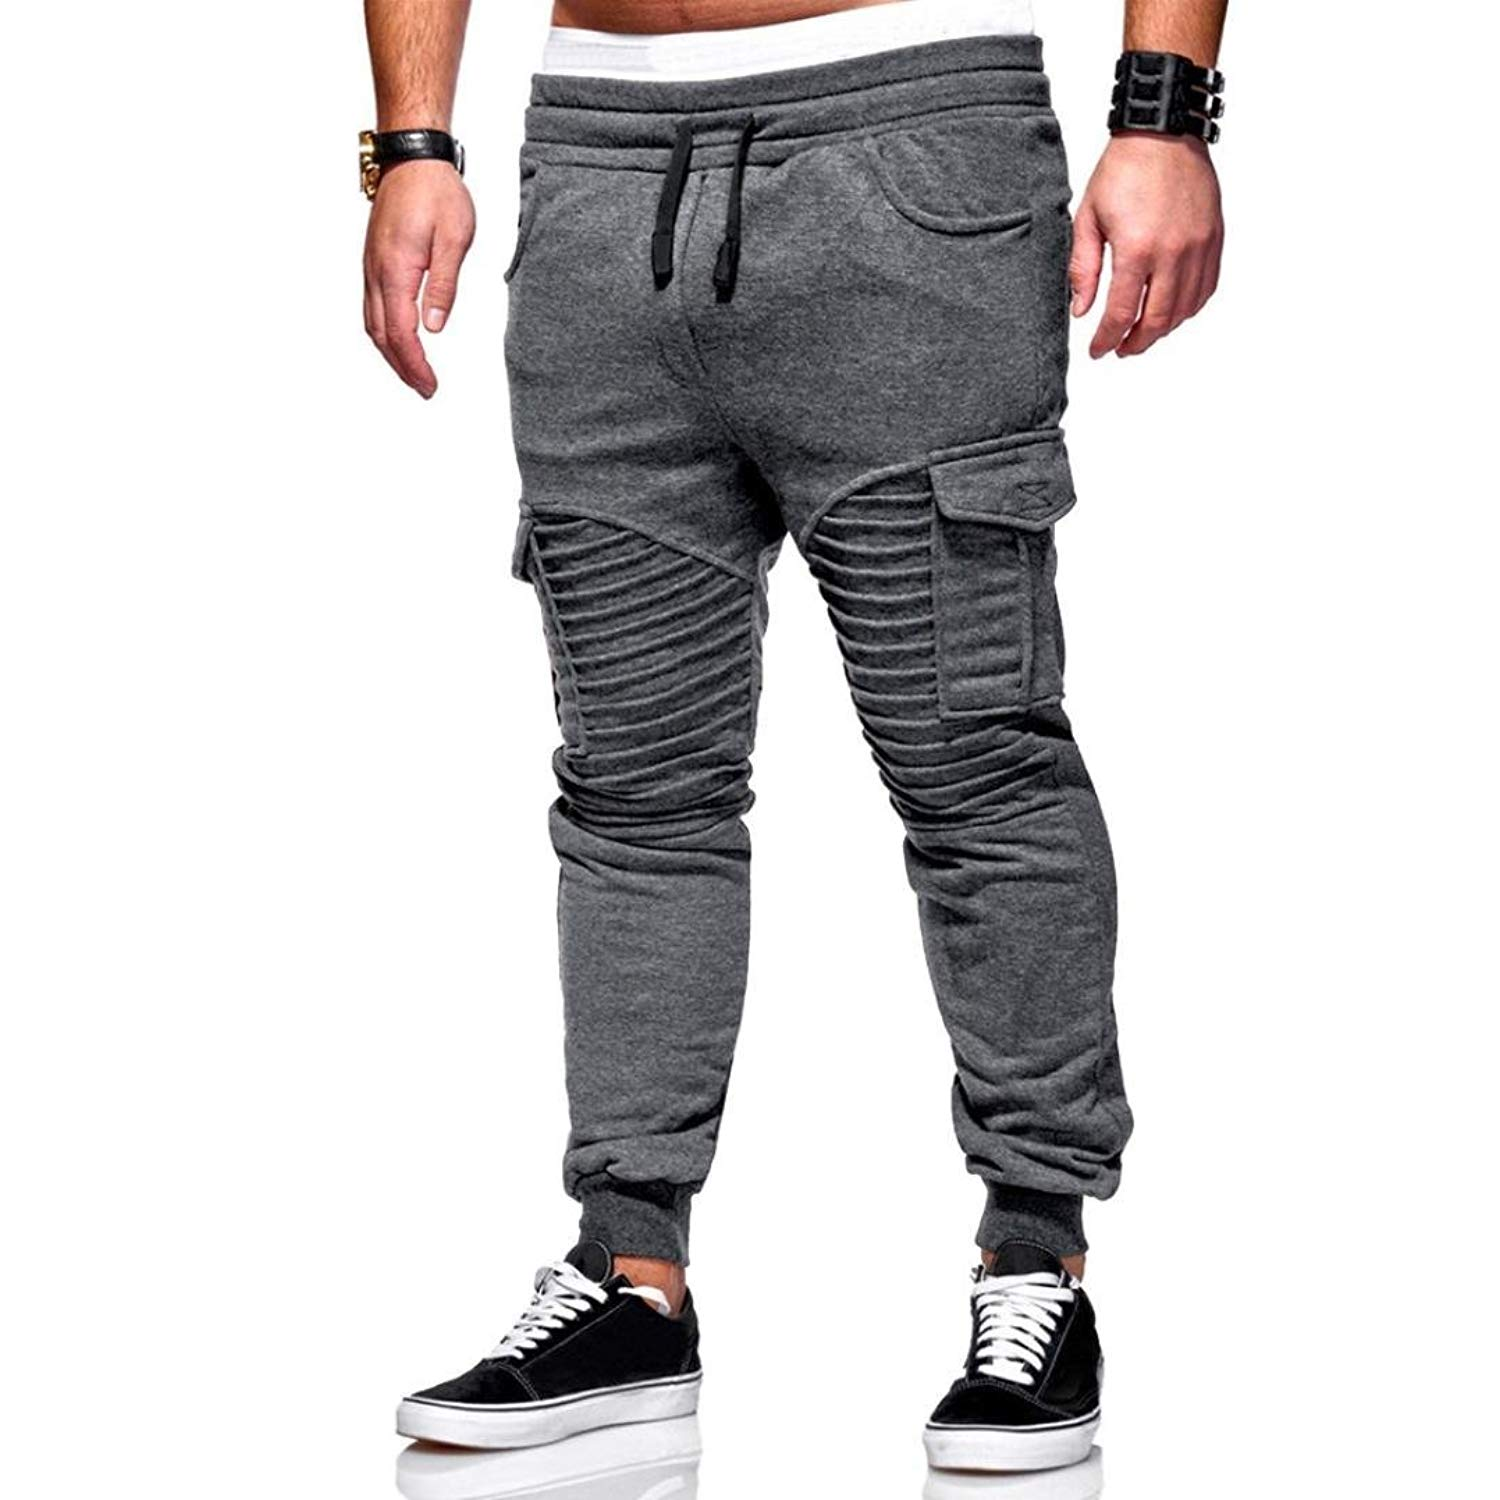 Men Cargo Joggers, Male Casual Sweatpants Baggy Trousers Elastic Solid Slacks Pants with Pockets